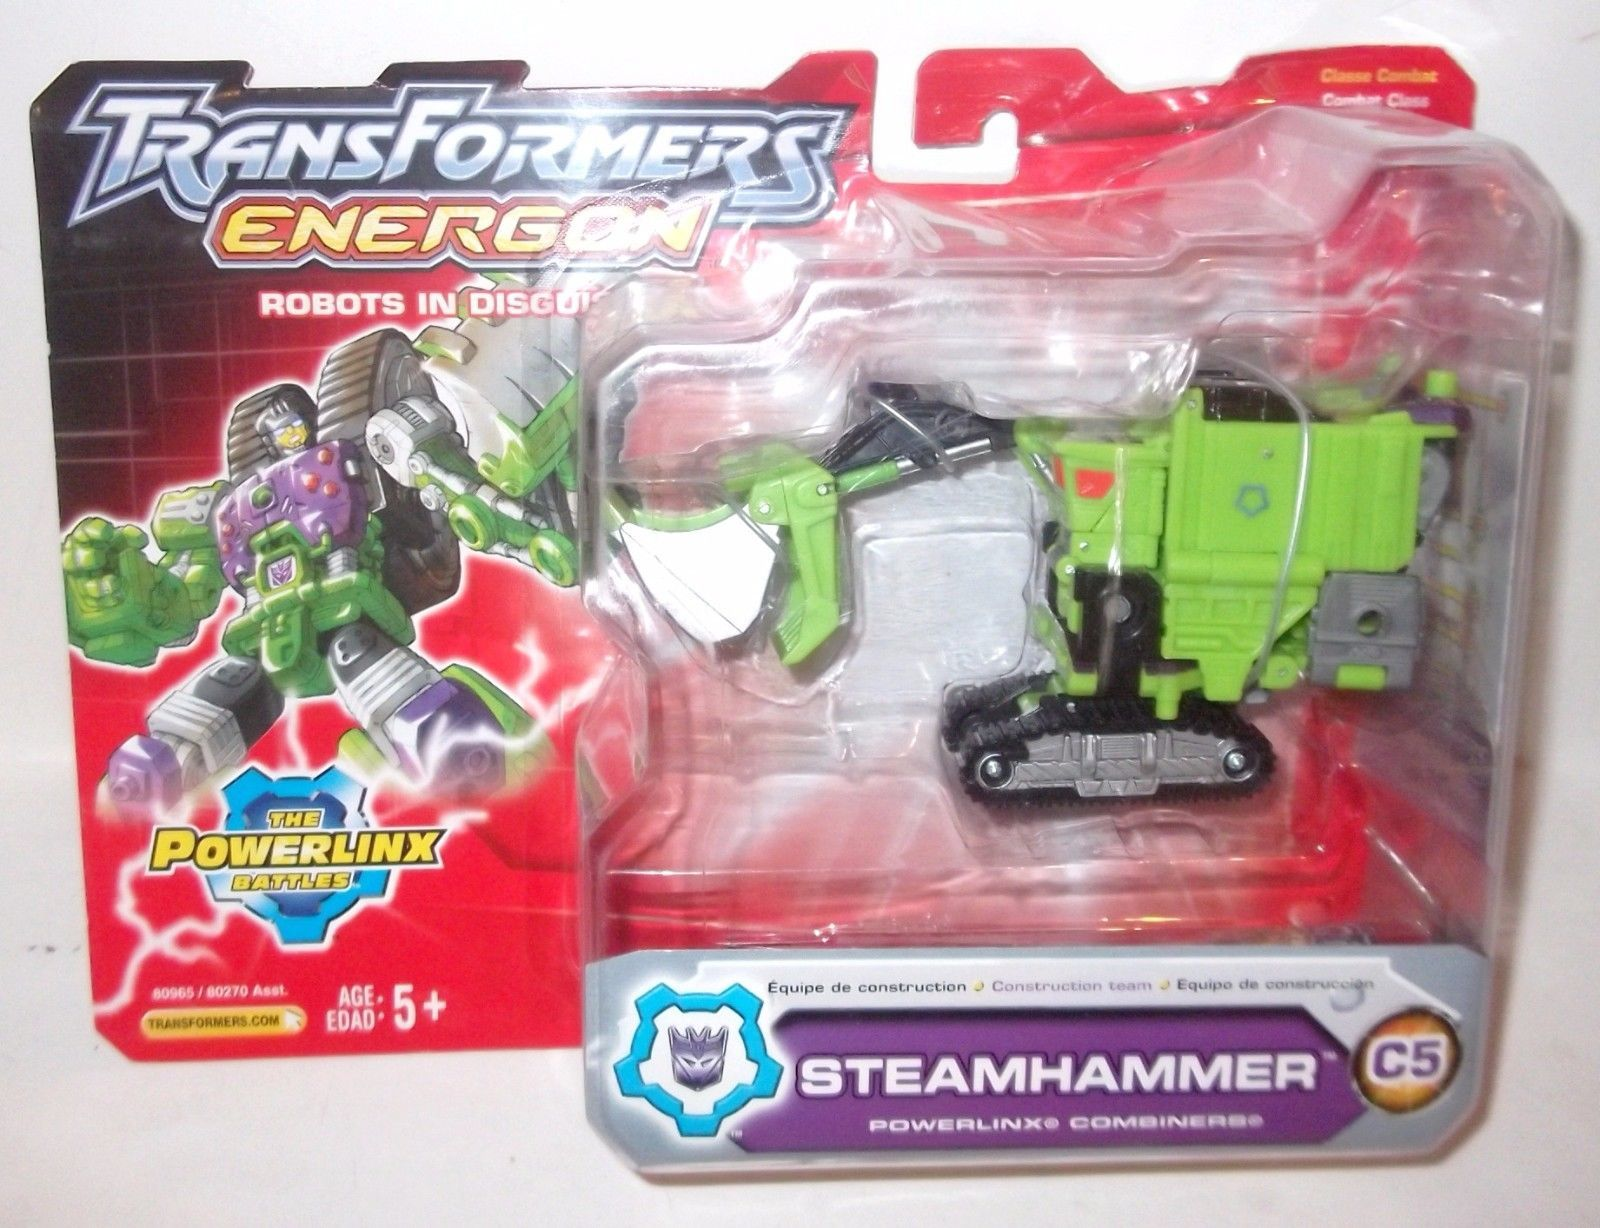 Transformers Energon STEAMHAMMER DELUXE Hasbro figure MOC sealed loose or carded image 2